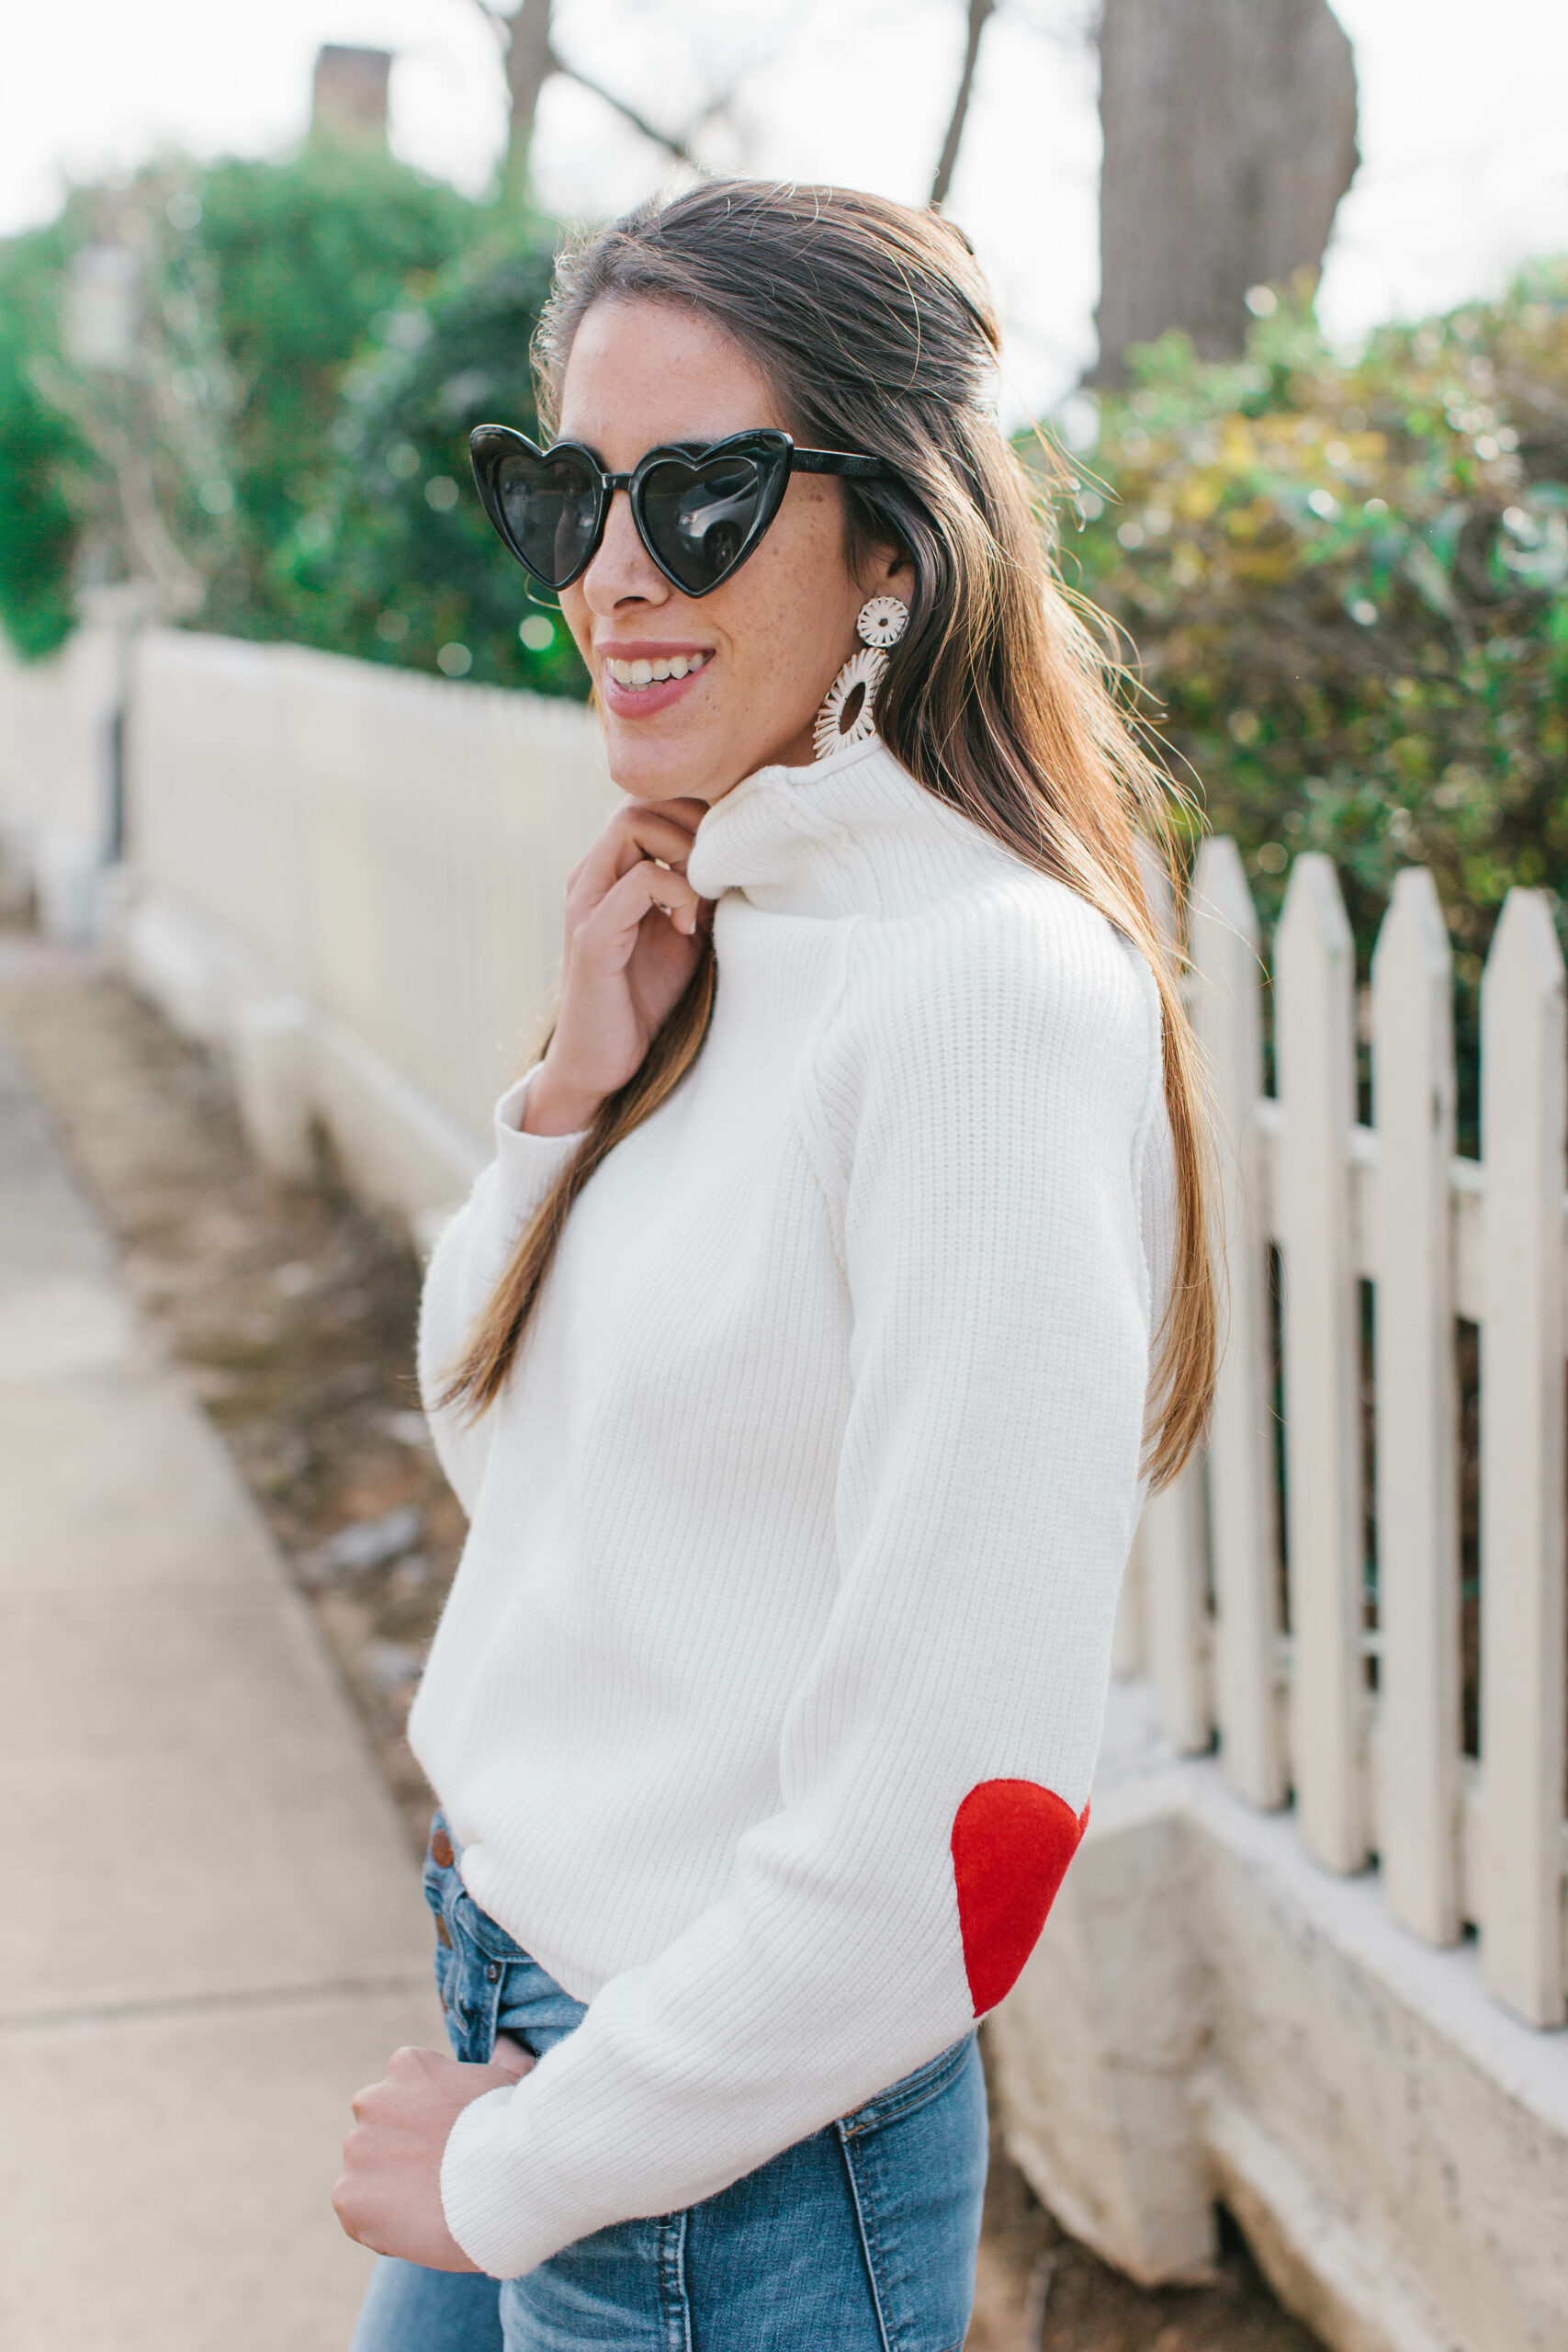 The Coziest Heart Sweater for Valentines